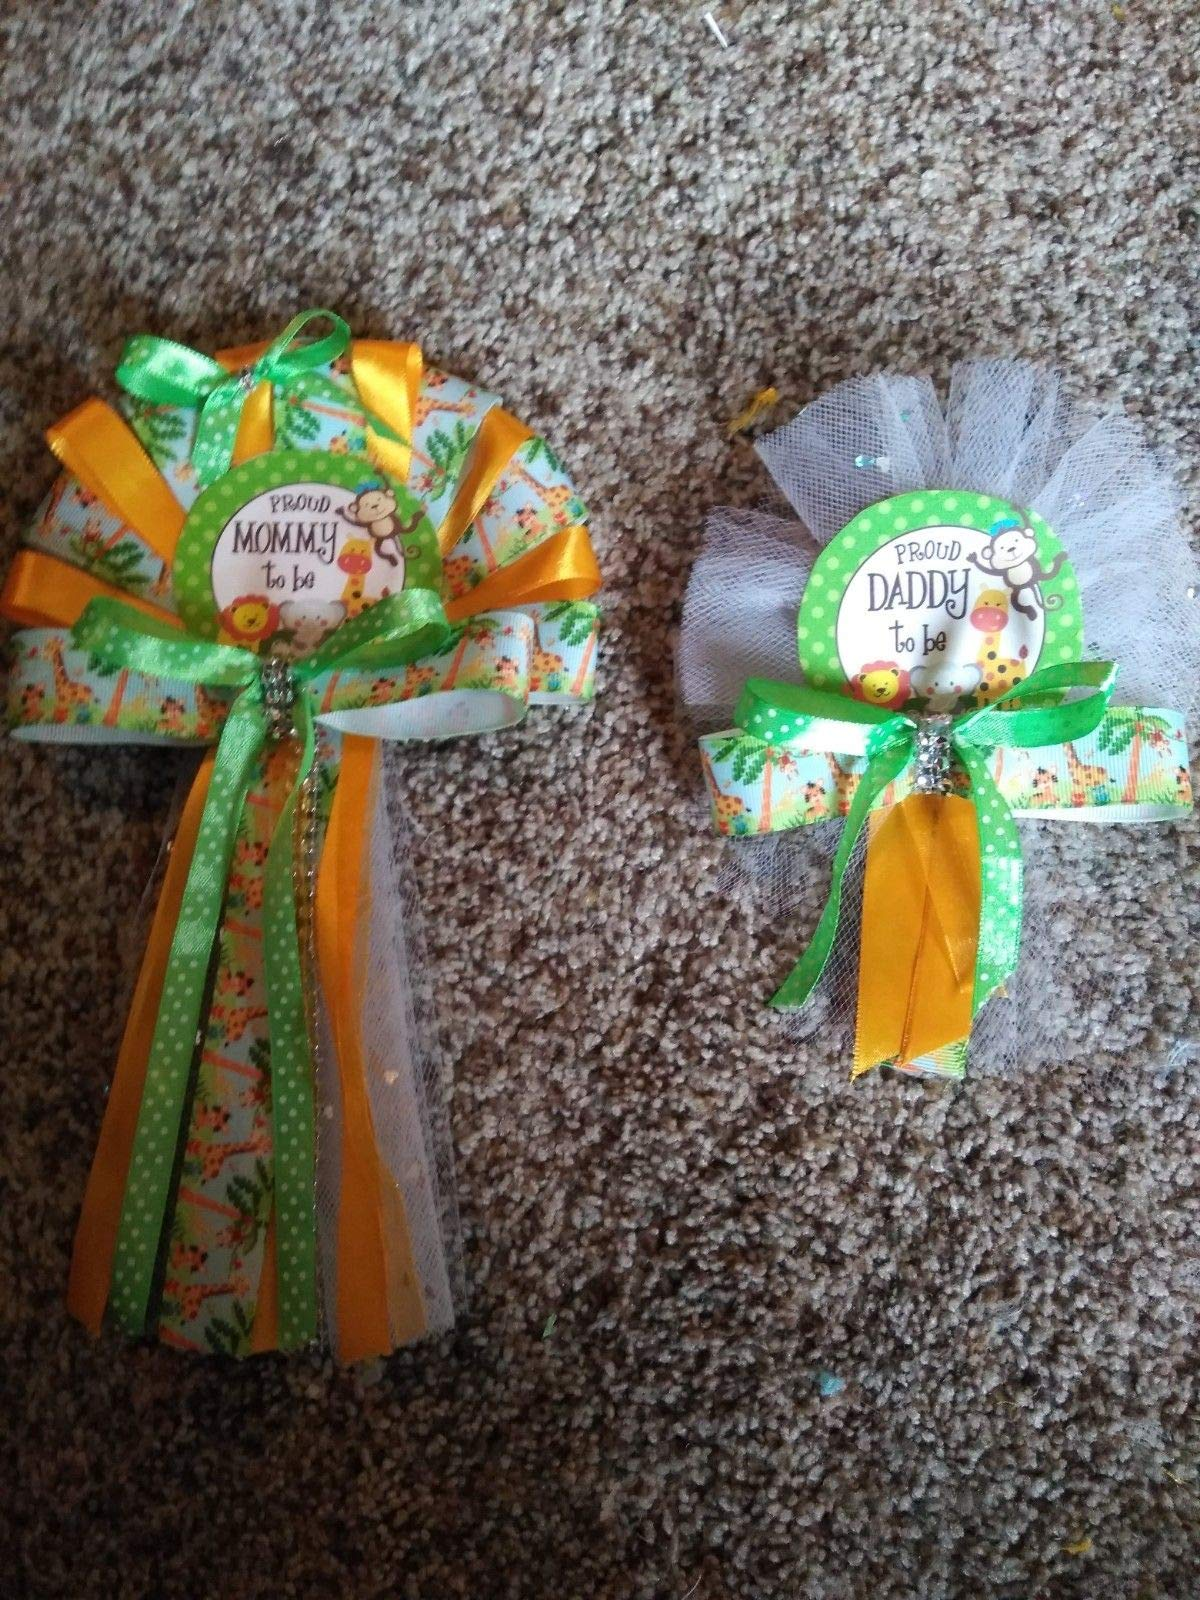 Baby Shower Mommy and Daddy to Be Corsage